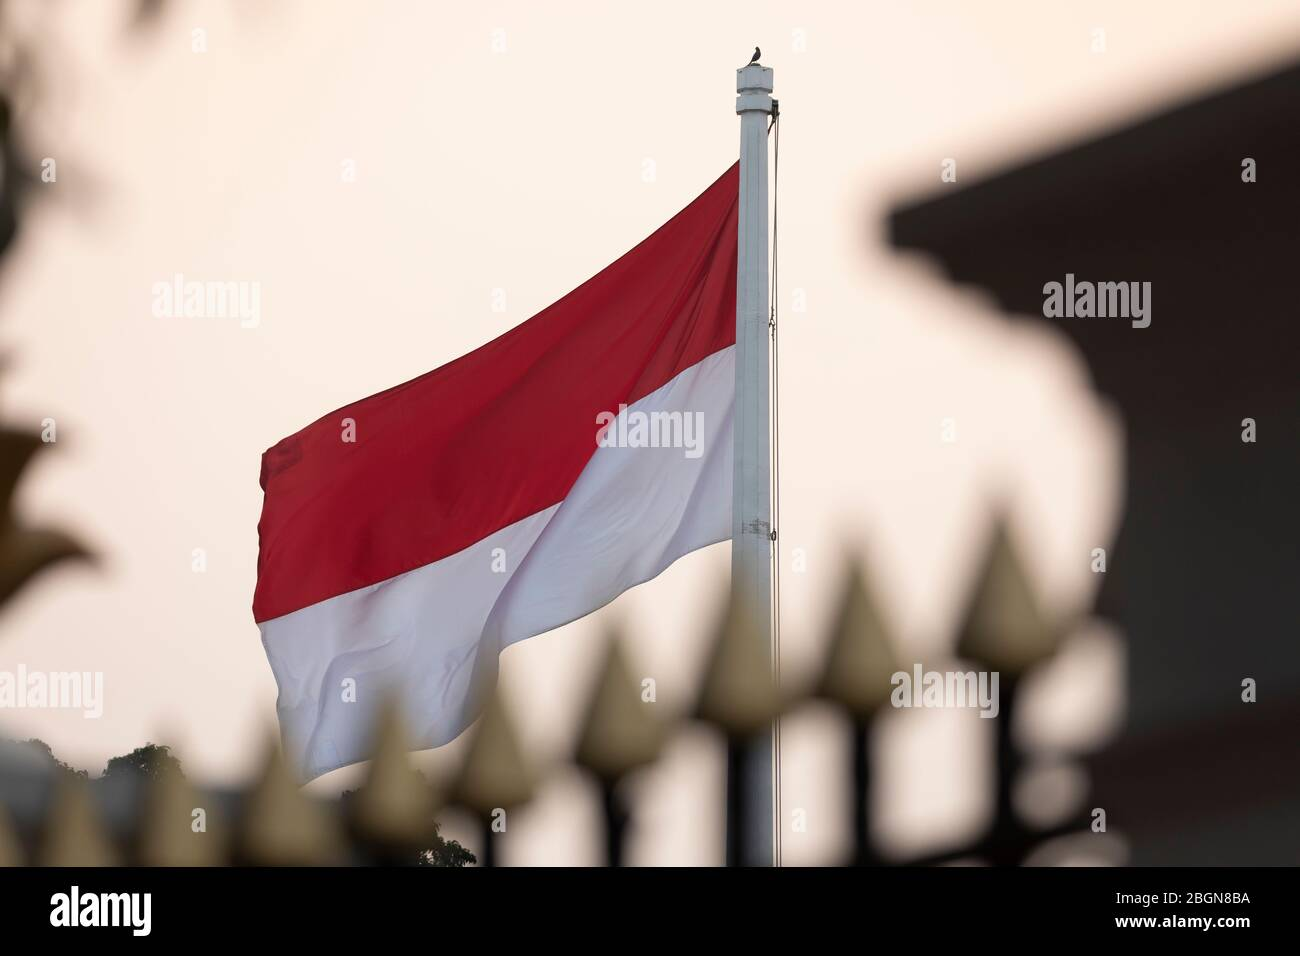 Jakarta, Indonesia - July 13, 2019: Detail of the Indonesian national red and white flag next to Medan Merdeka Utara avenue in the Central Jakarta. Stock Photo